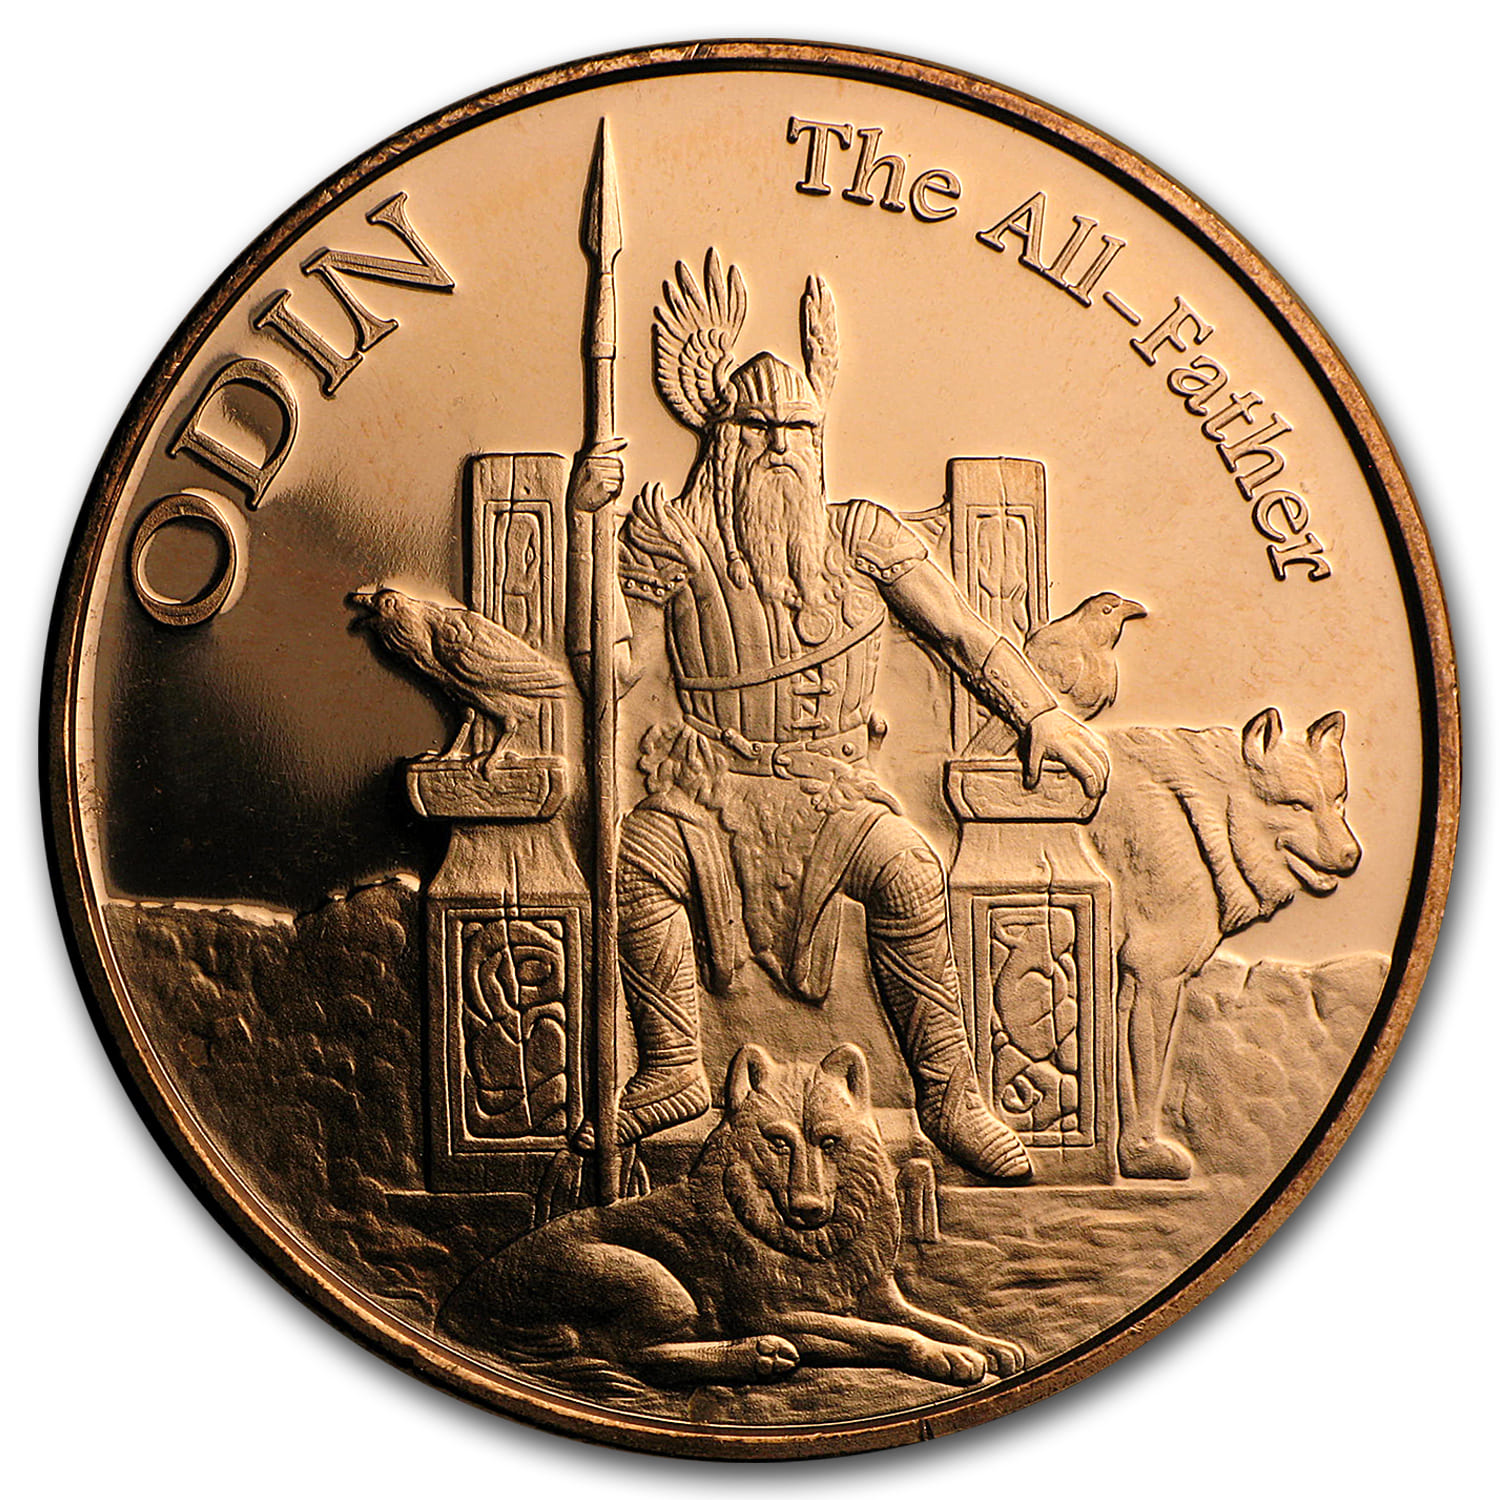 1 oz Copper Round - Odin The All-Father (Anonymous Mint)